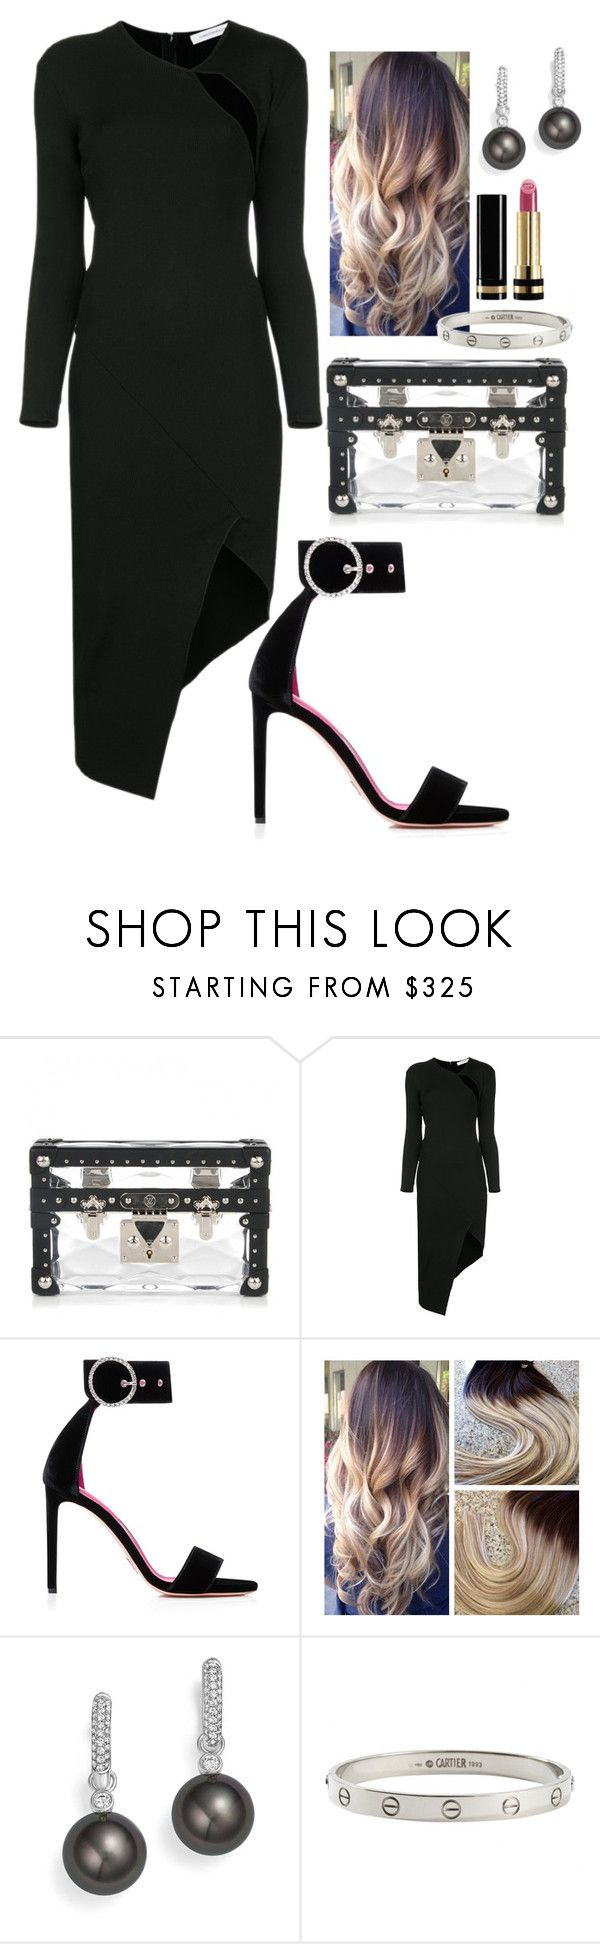 """#61"" by walkonbypolyvore ❤ liked on Polyvore featuring Louis Vuitton, Christopher Esber, Oscar Tiye, Tara, Cartier and Gucci"